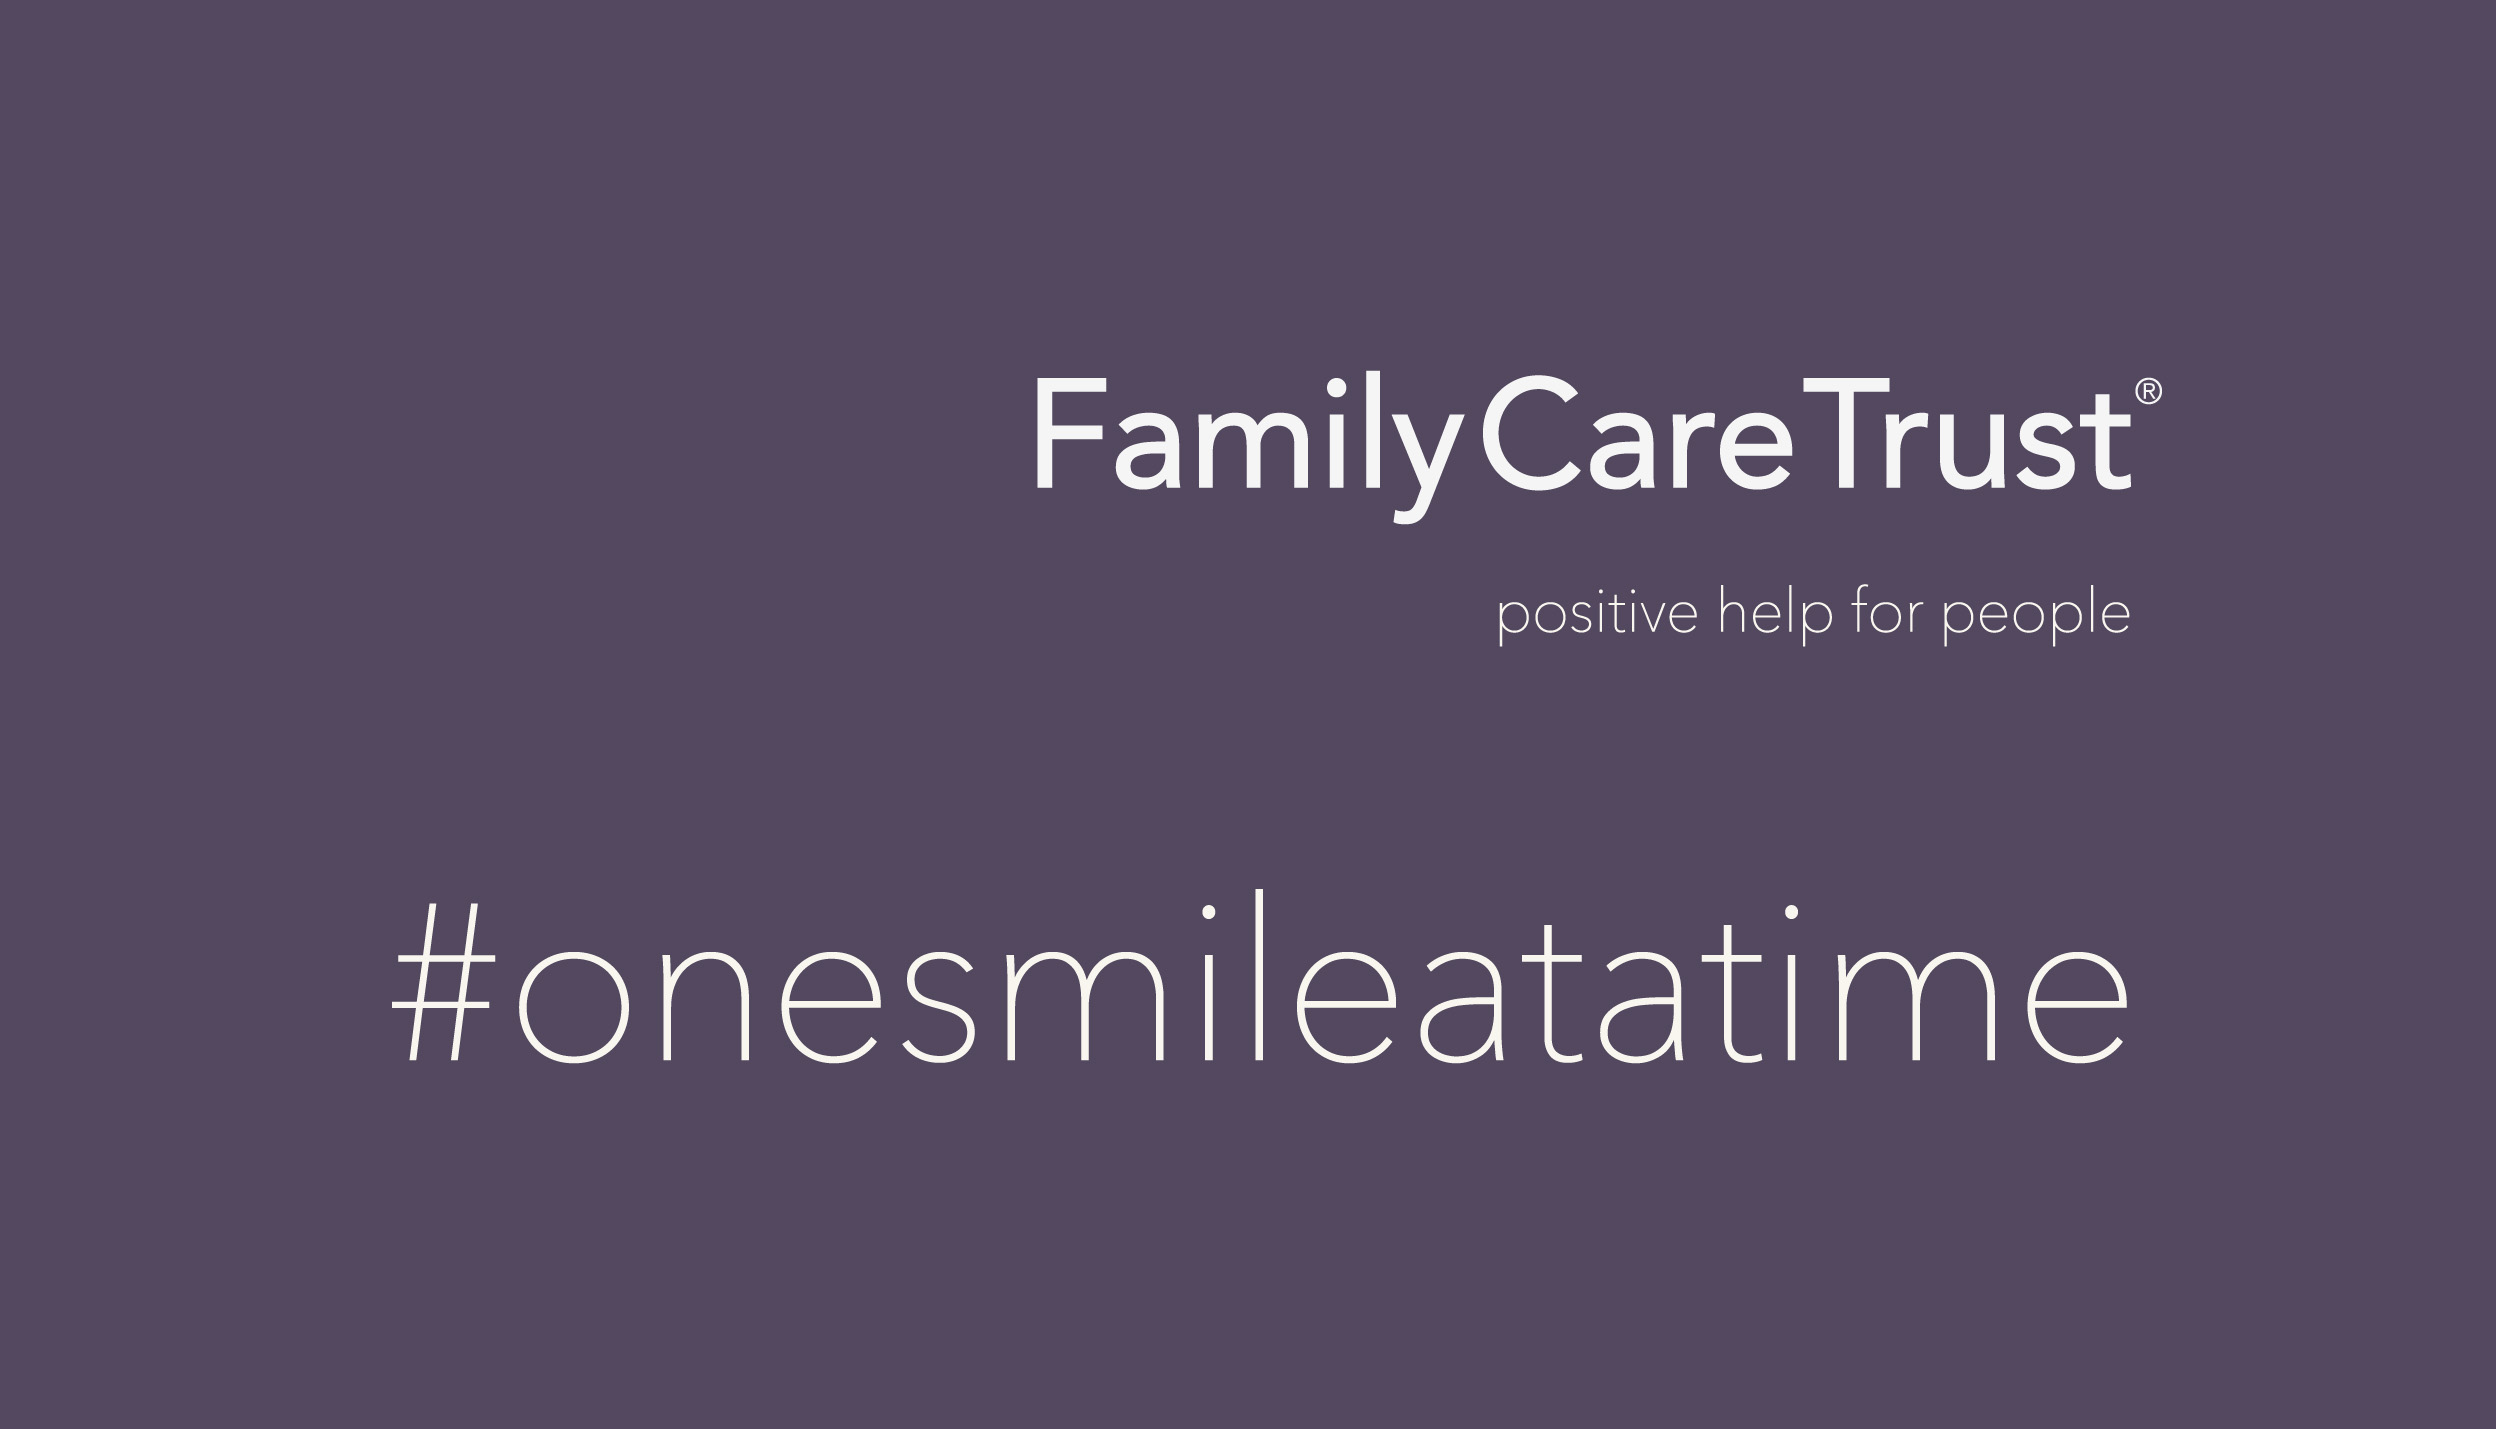 Family Care Trust New Branding